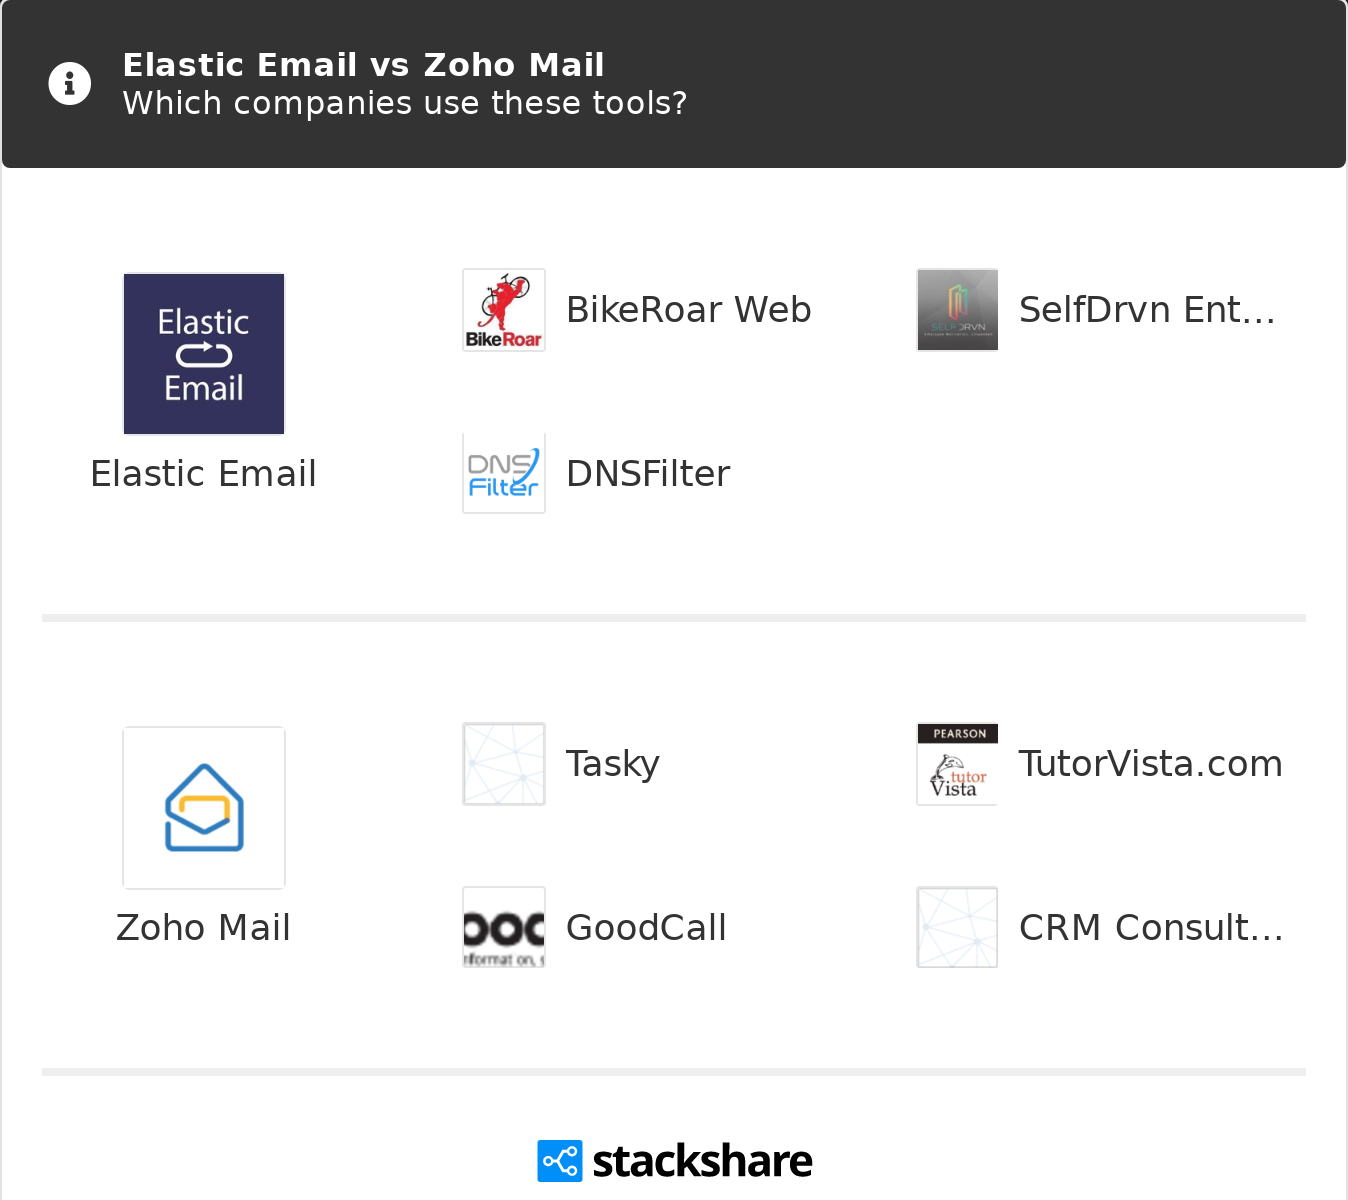 Elastic Email vs Zoho Mail | What are the differences?